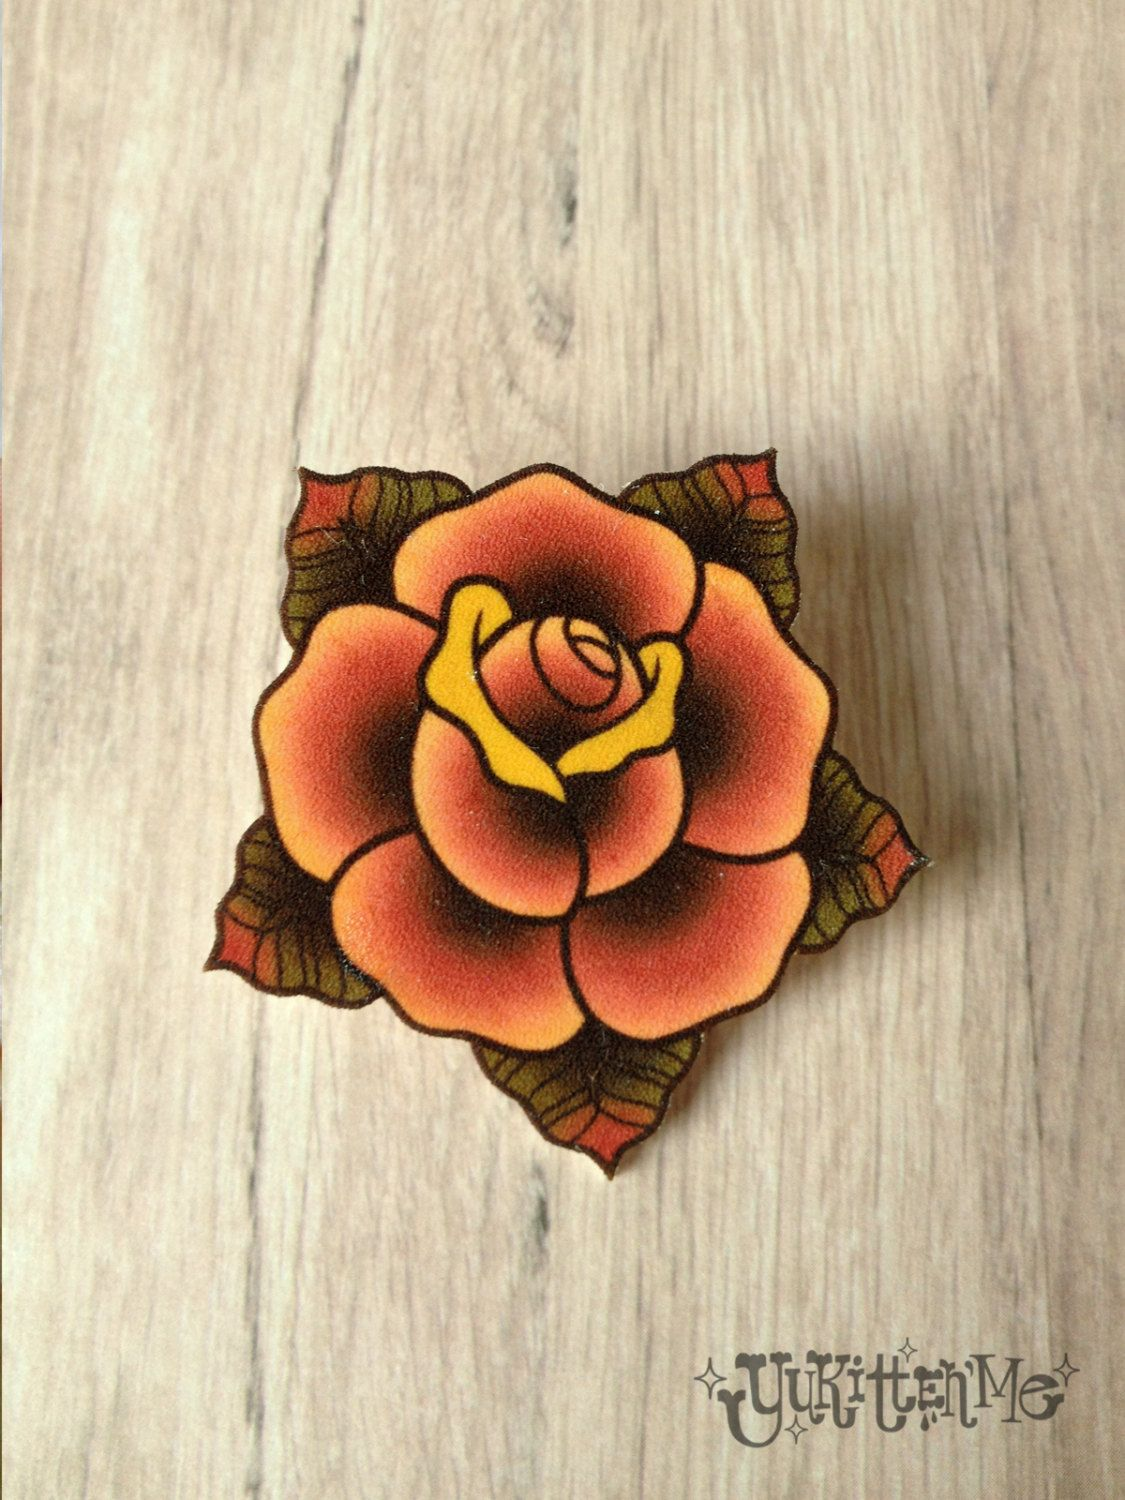 Traditional Rose Tattoo : traditional, tattoo, Melvin, Tattoos, Traditional, Tattoos,, Tattoo, Flowers,, School